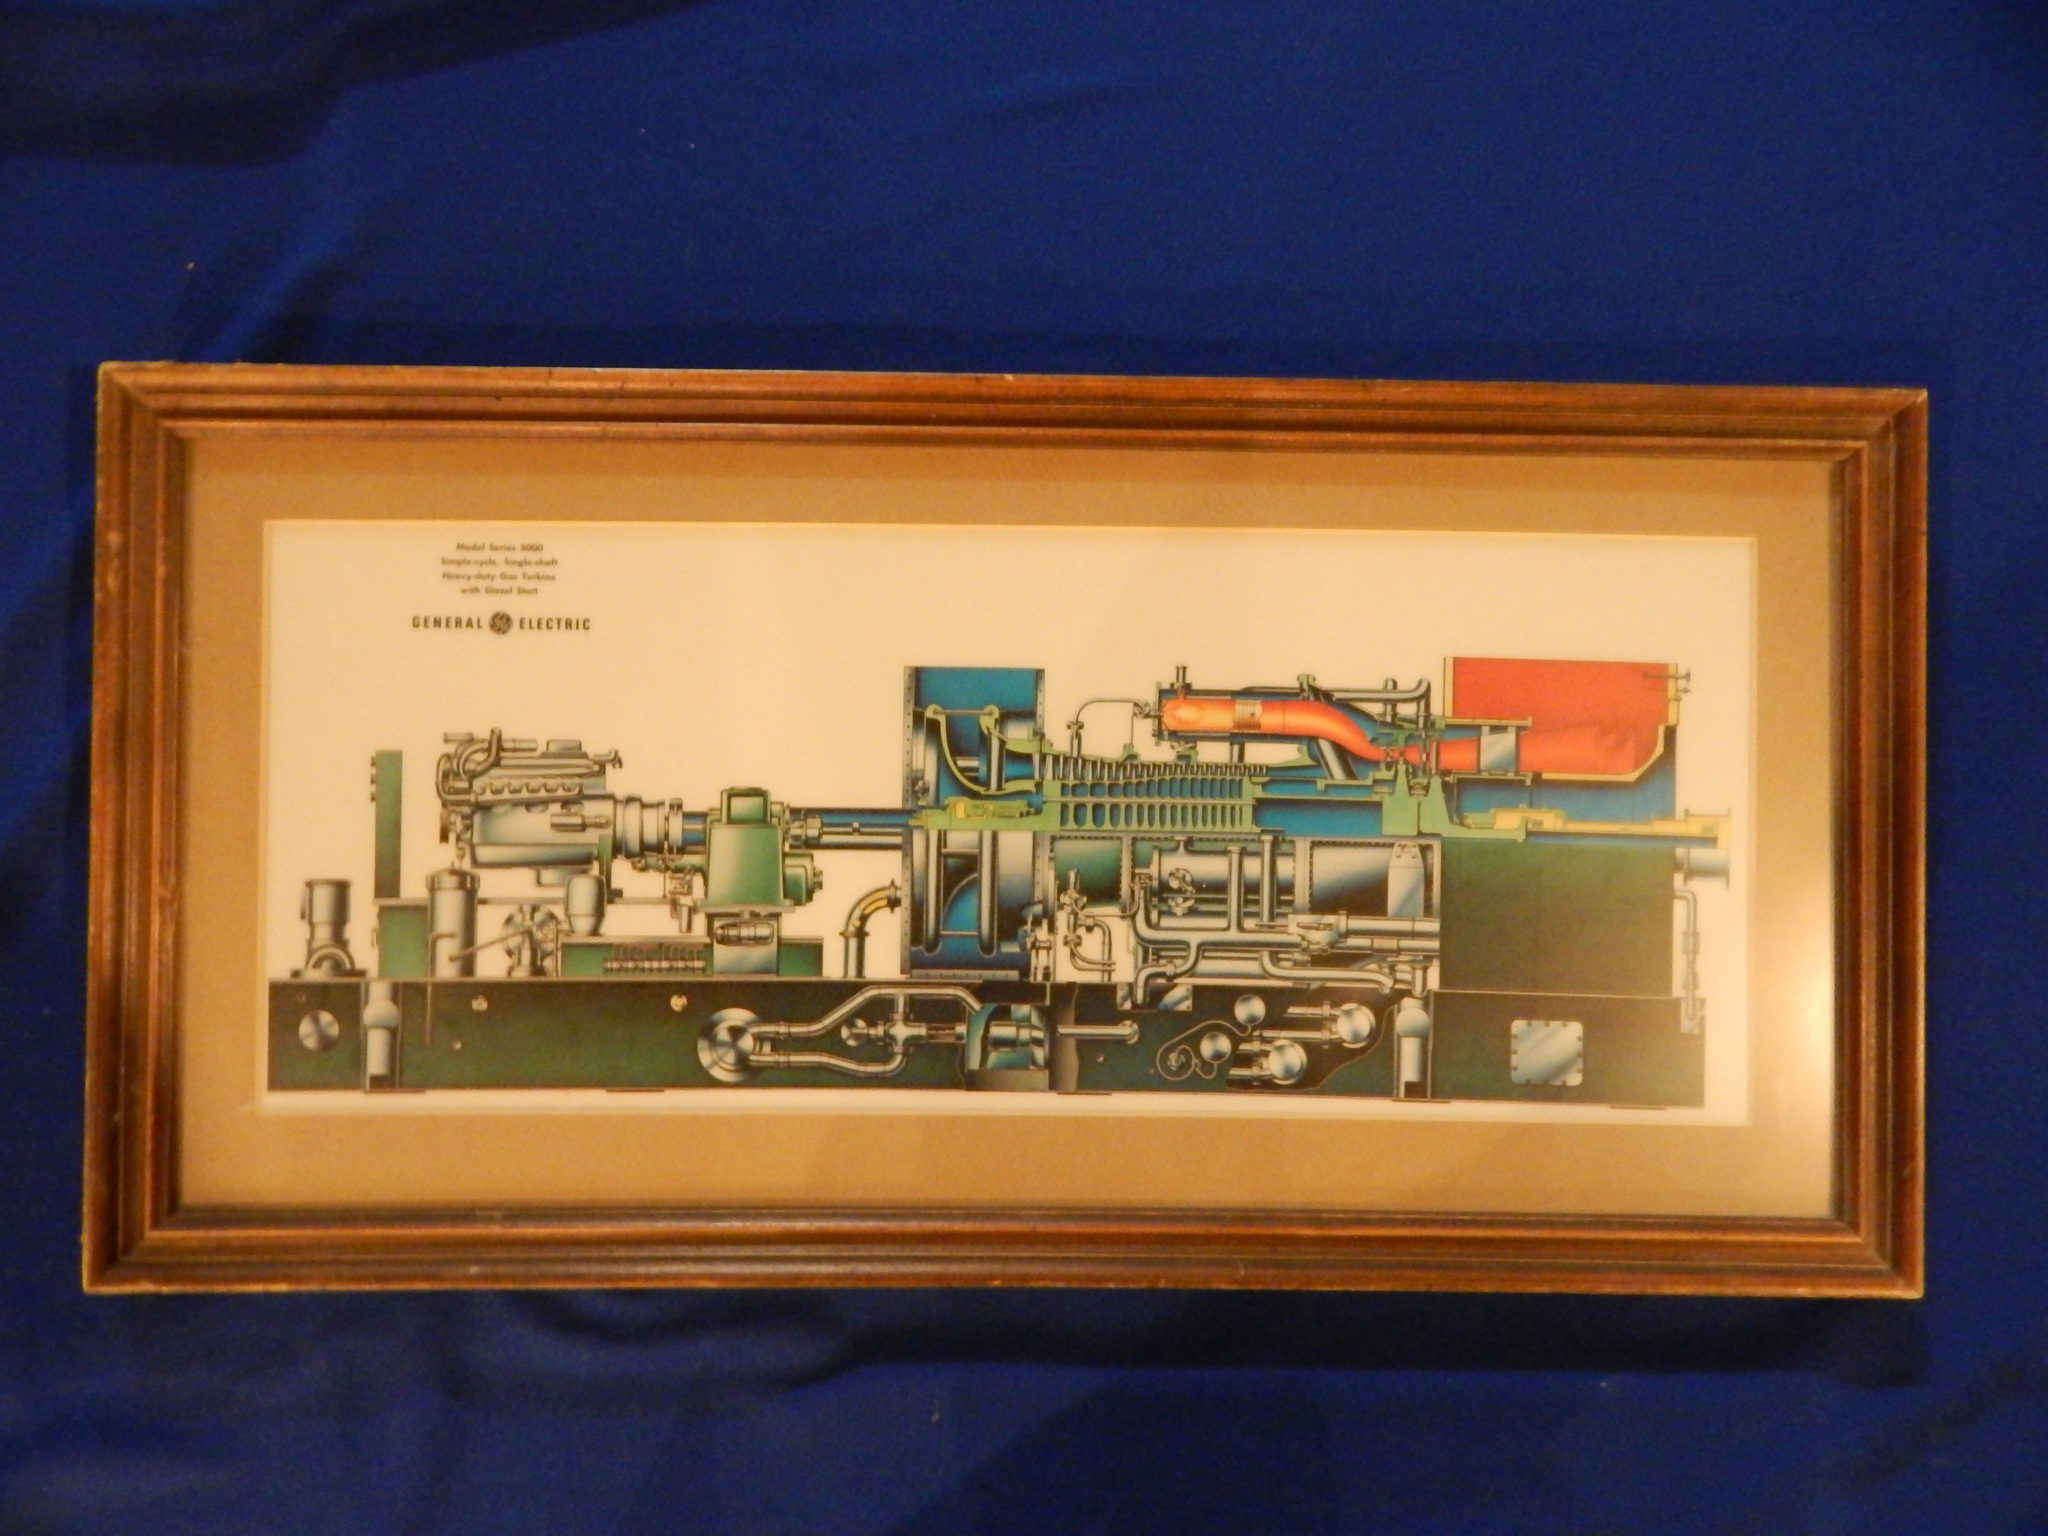 General Electric Model Series 5600 framed print